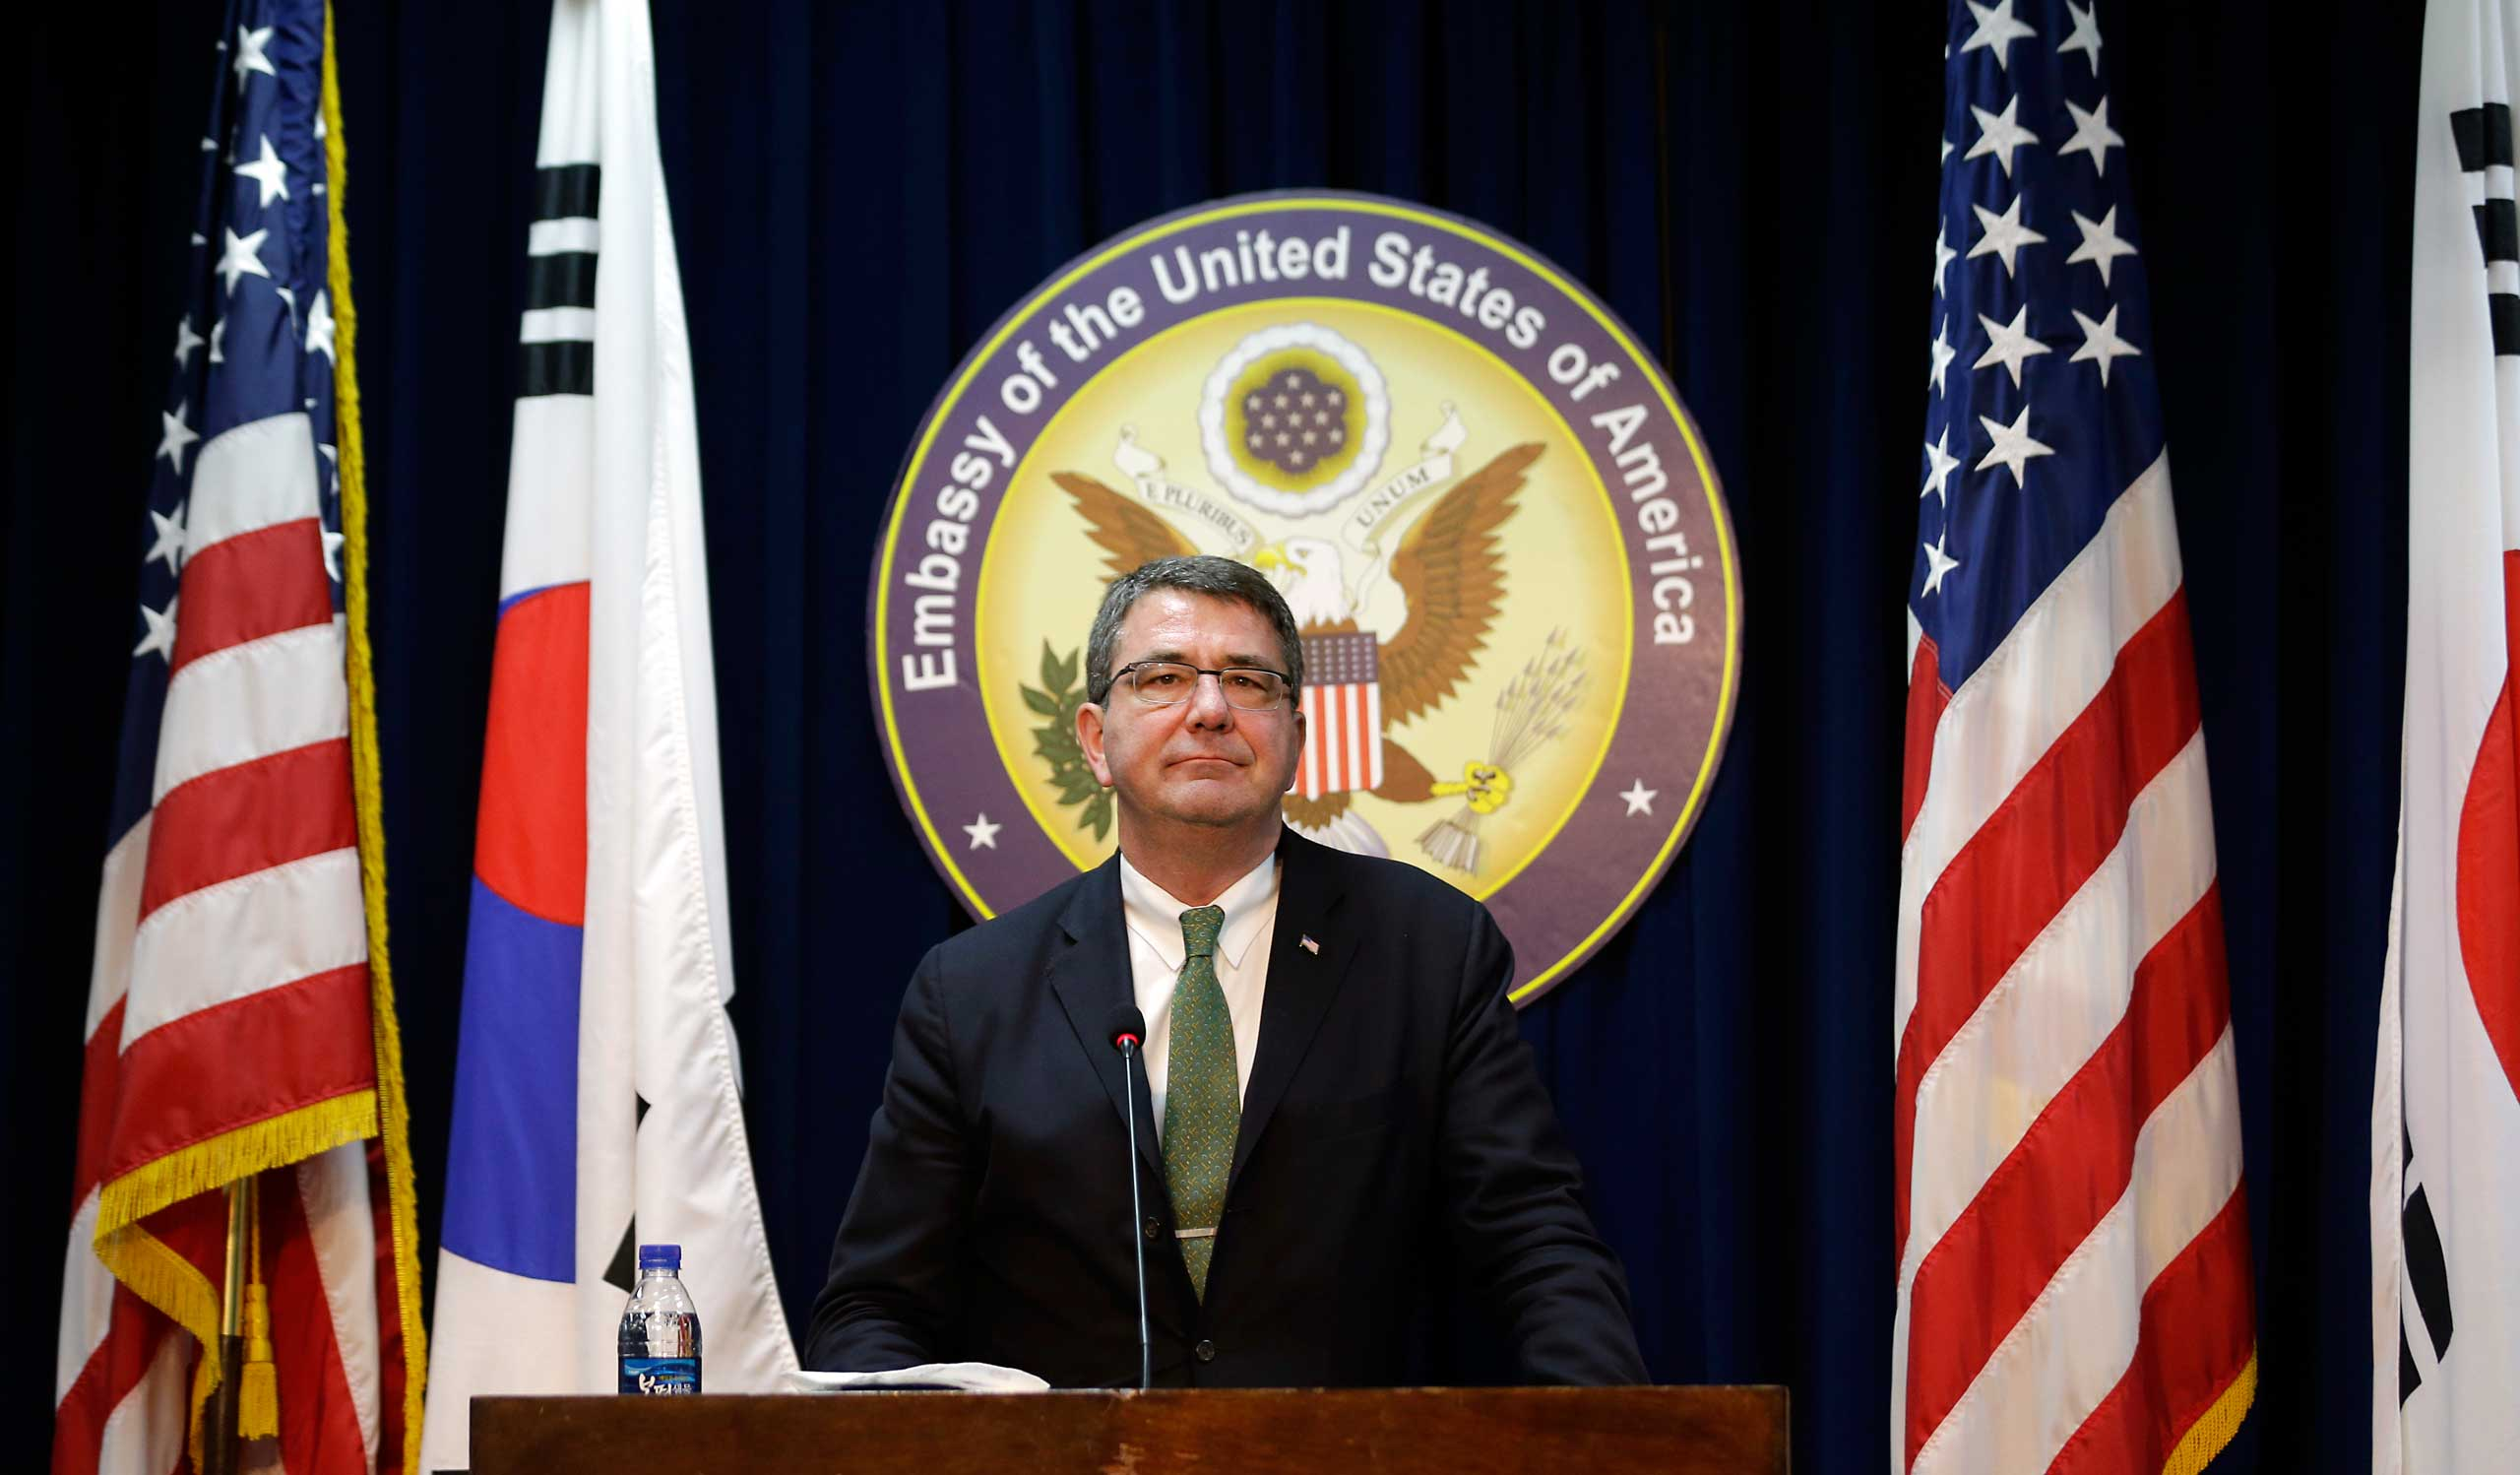 U.S. Deputy Secretary of Defense Ashton Carter listens to reporters' question during a news conference at the U.S. Embassy in Seoul on March 18, 2013.